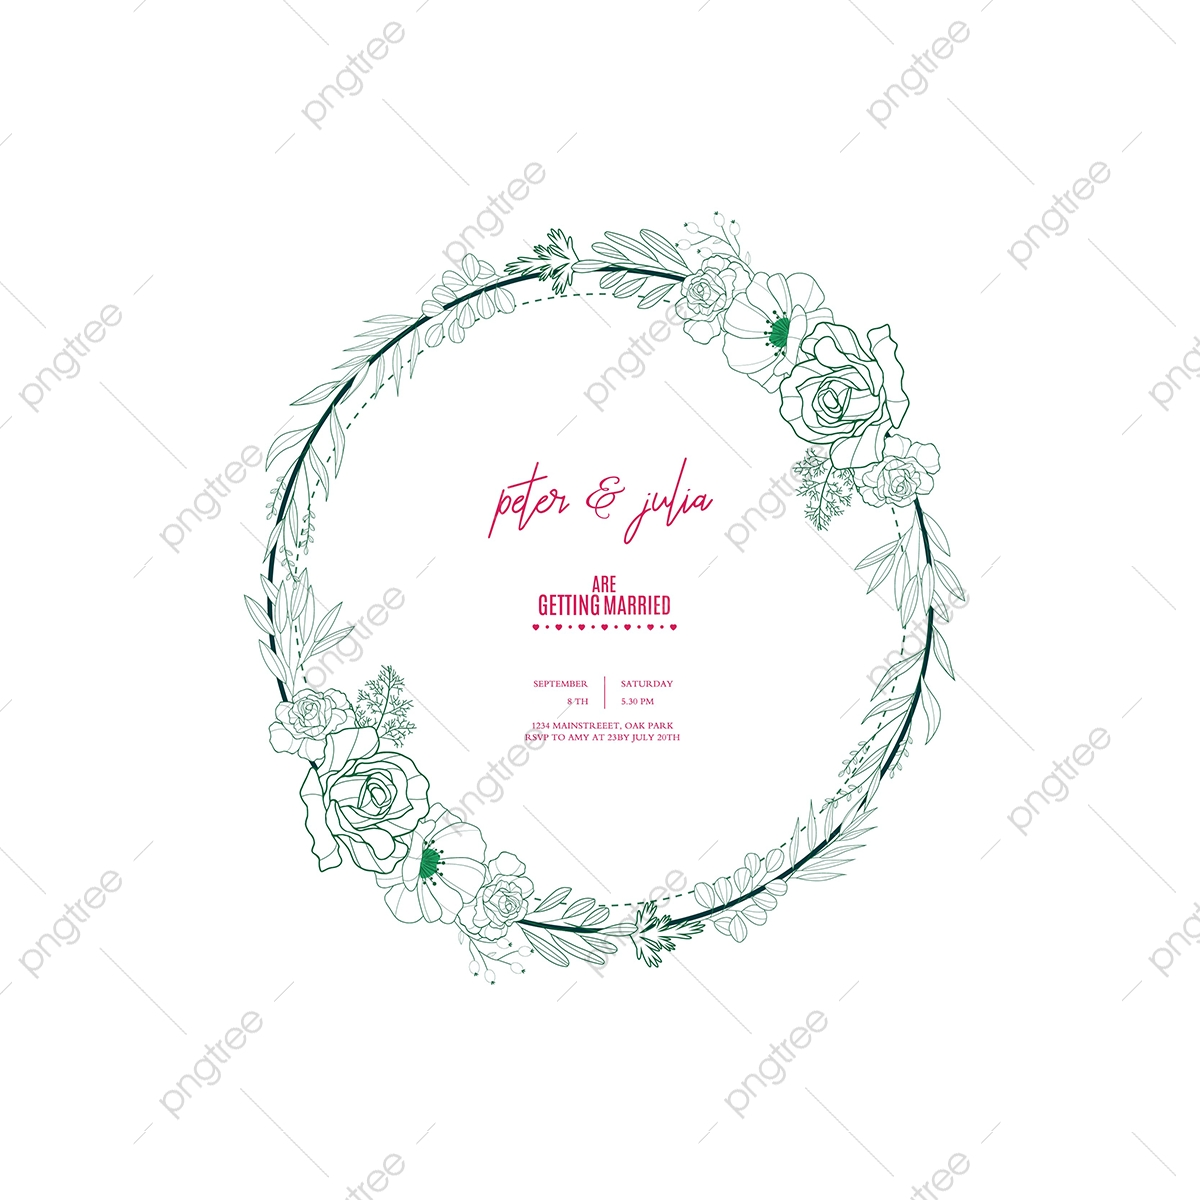 Save The Date Card, Frame, Wedding, Wedding Invitation PNG and